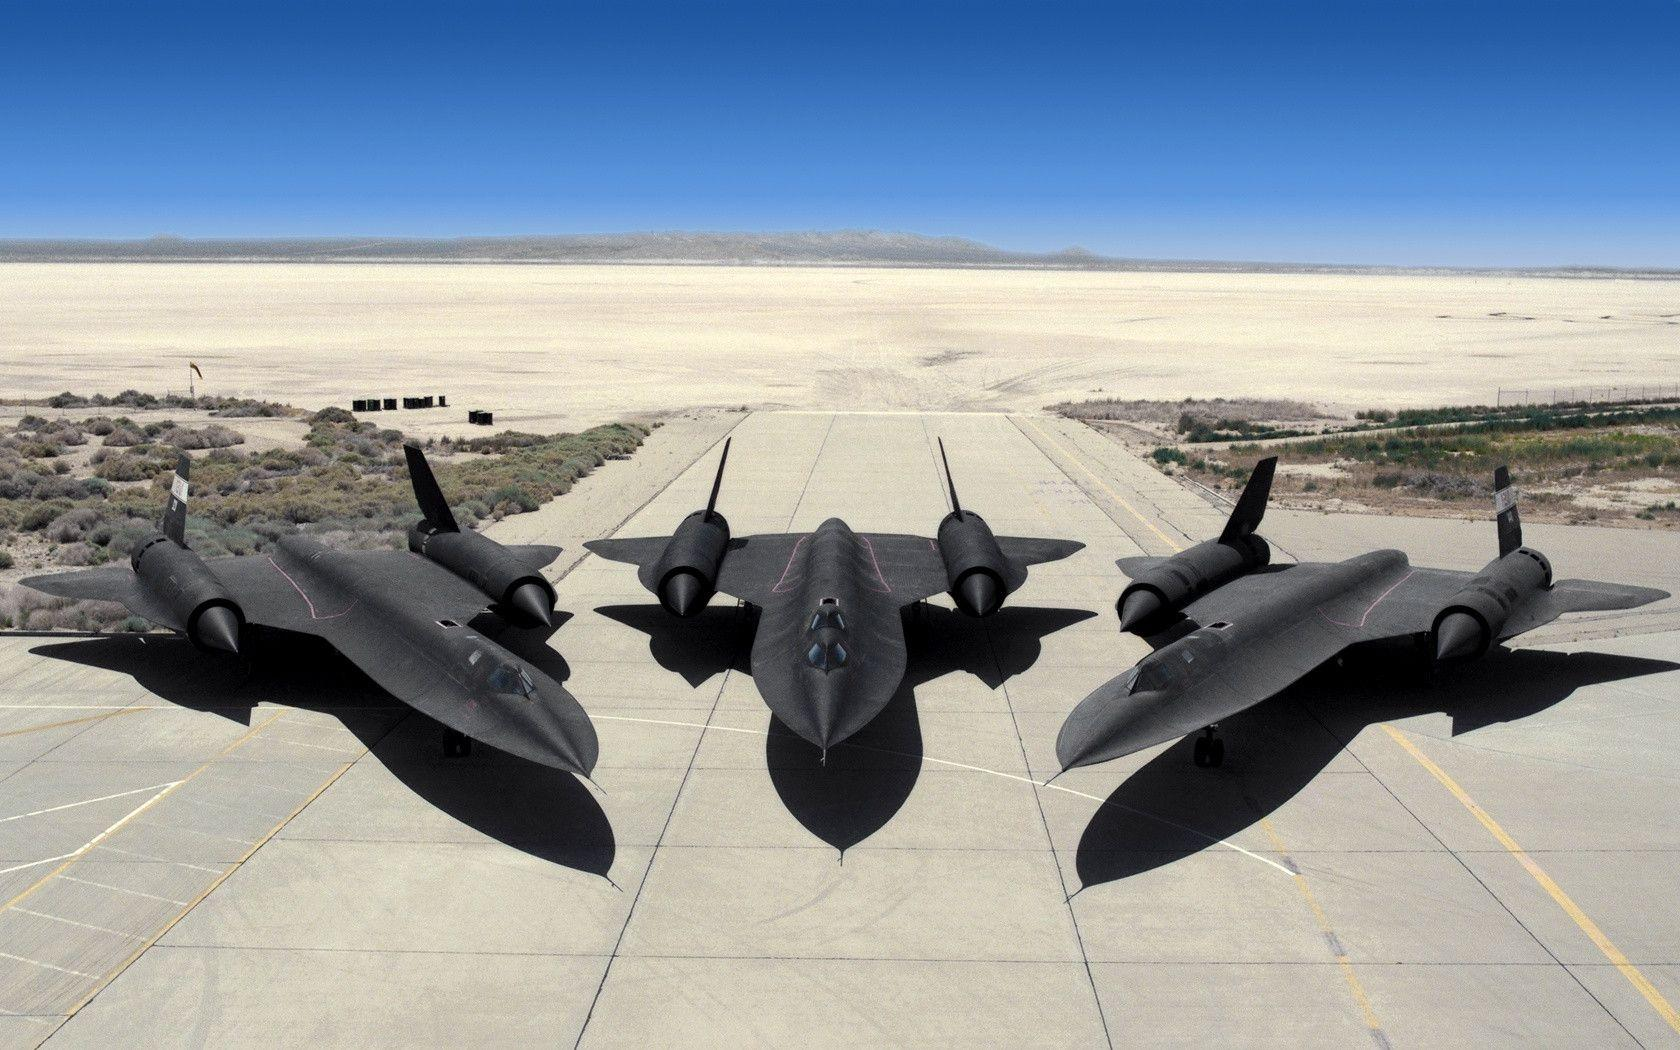 SR 71 Blackbird in the Air Force Base Wallpapers and Photo Download